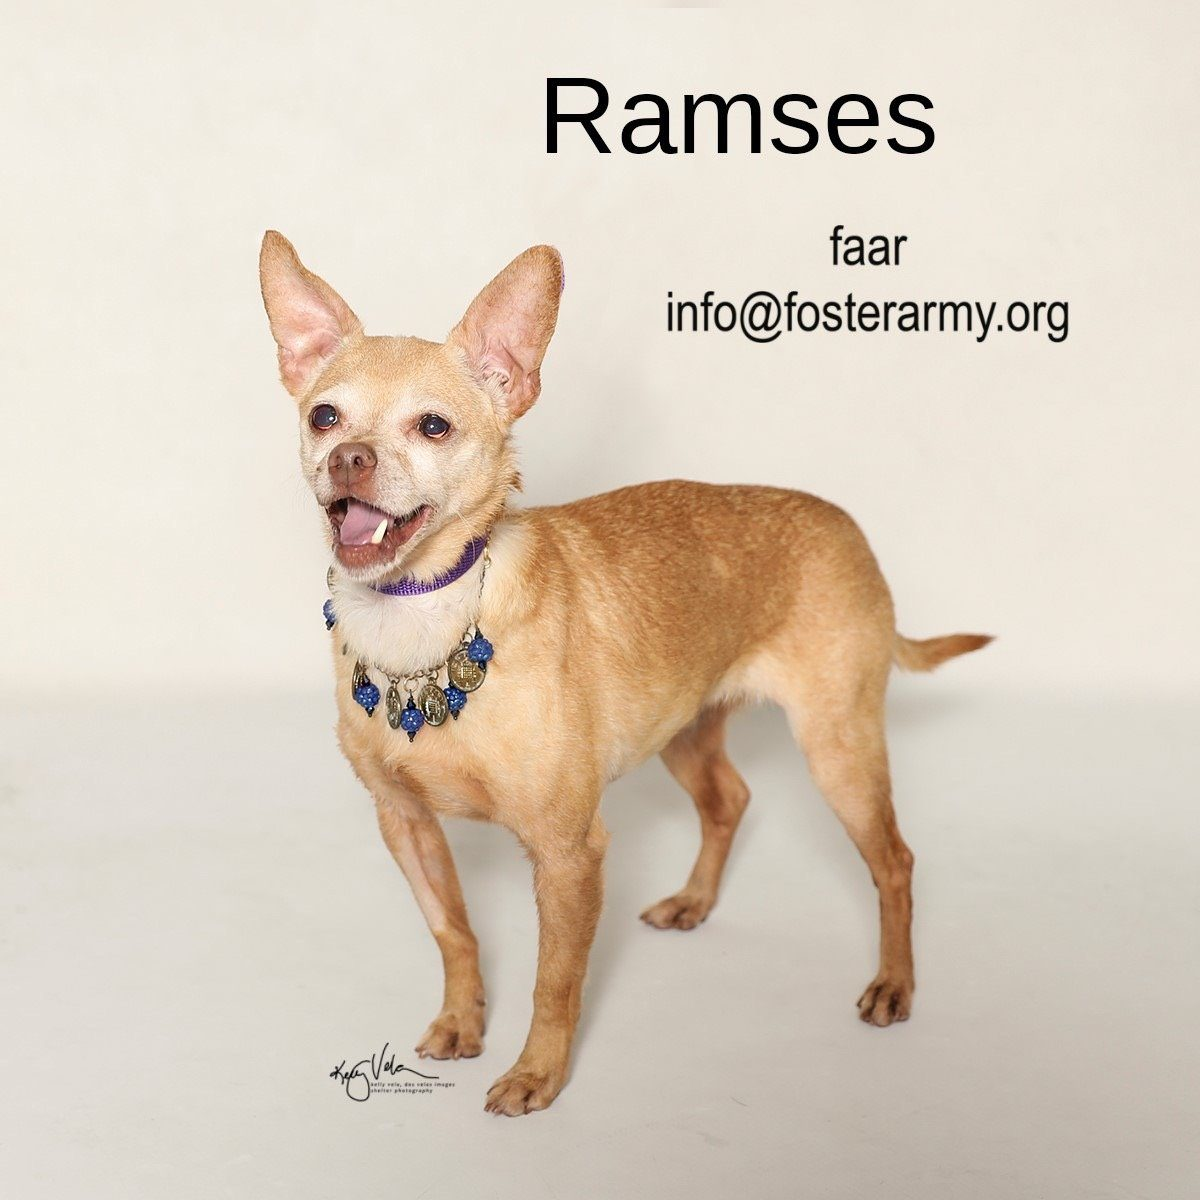 Adopt Ramses the Emperor with Foster Army Animal Rescue in Riverside, CA